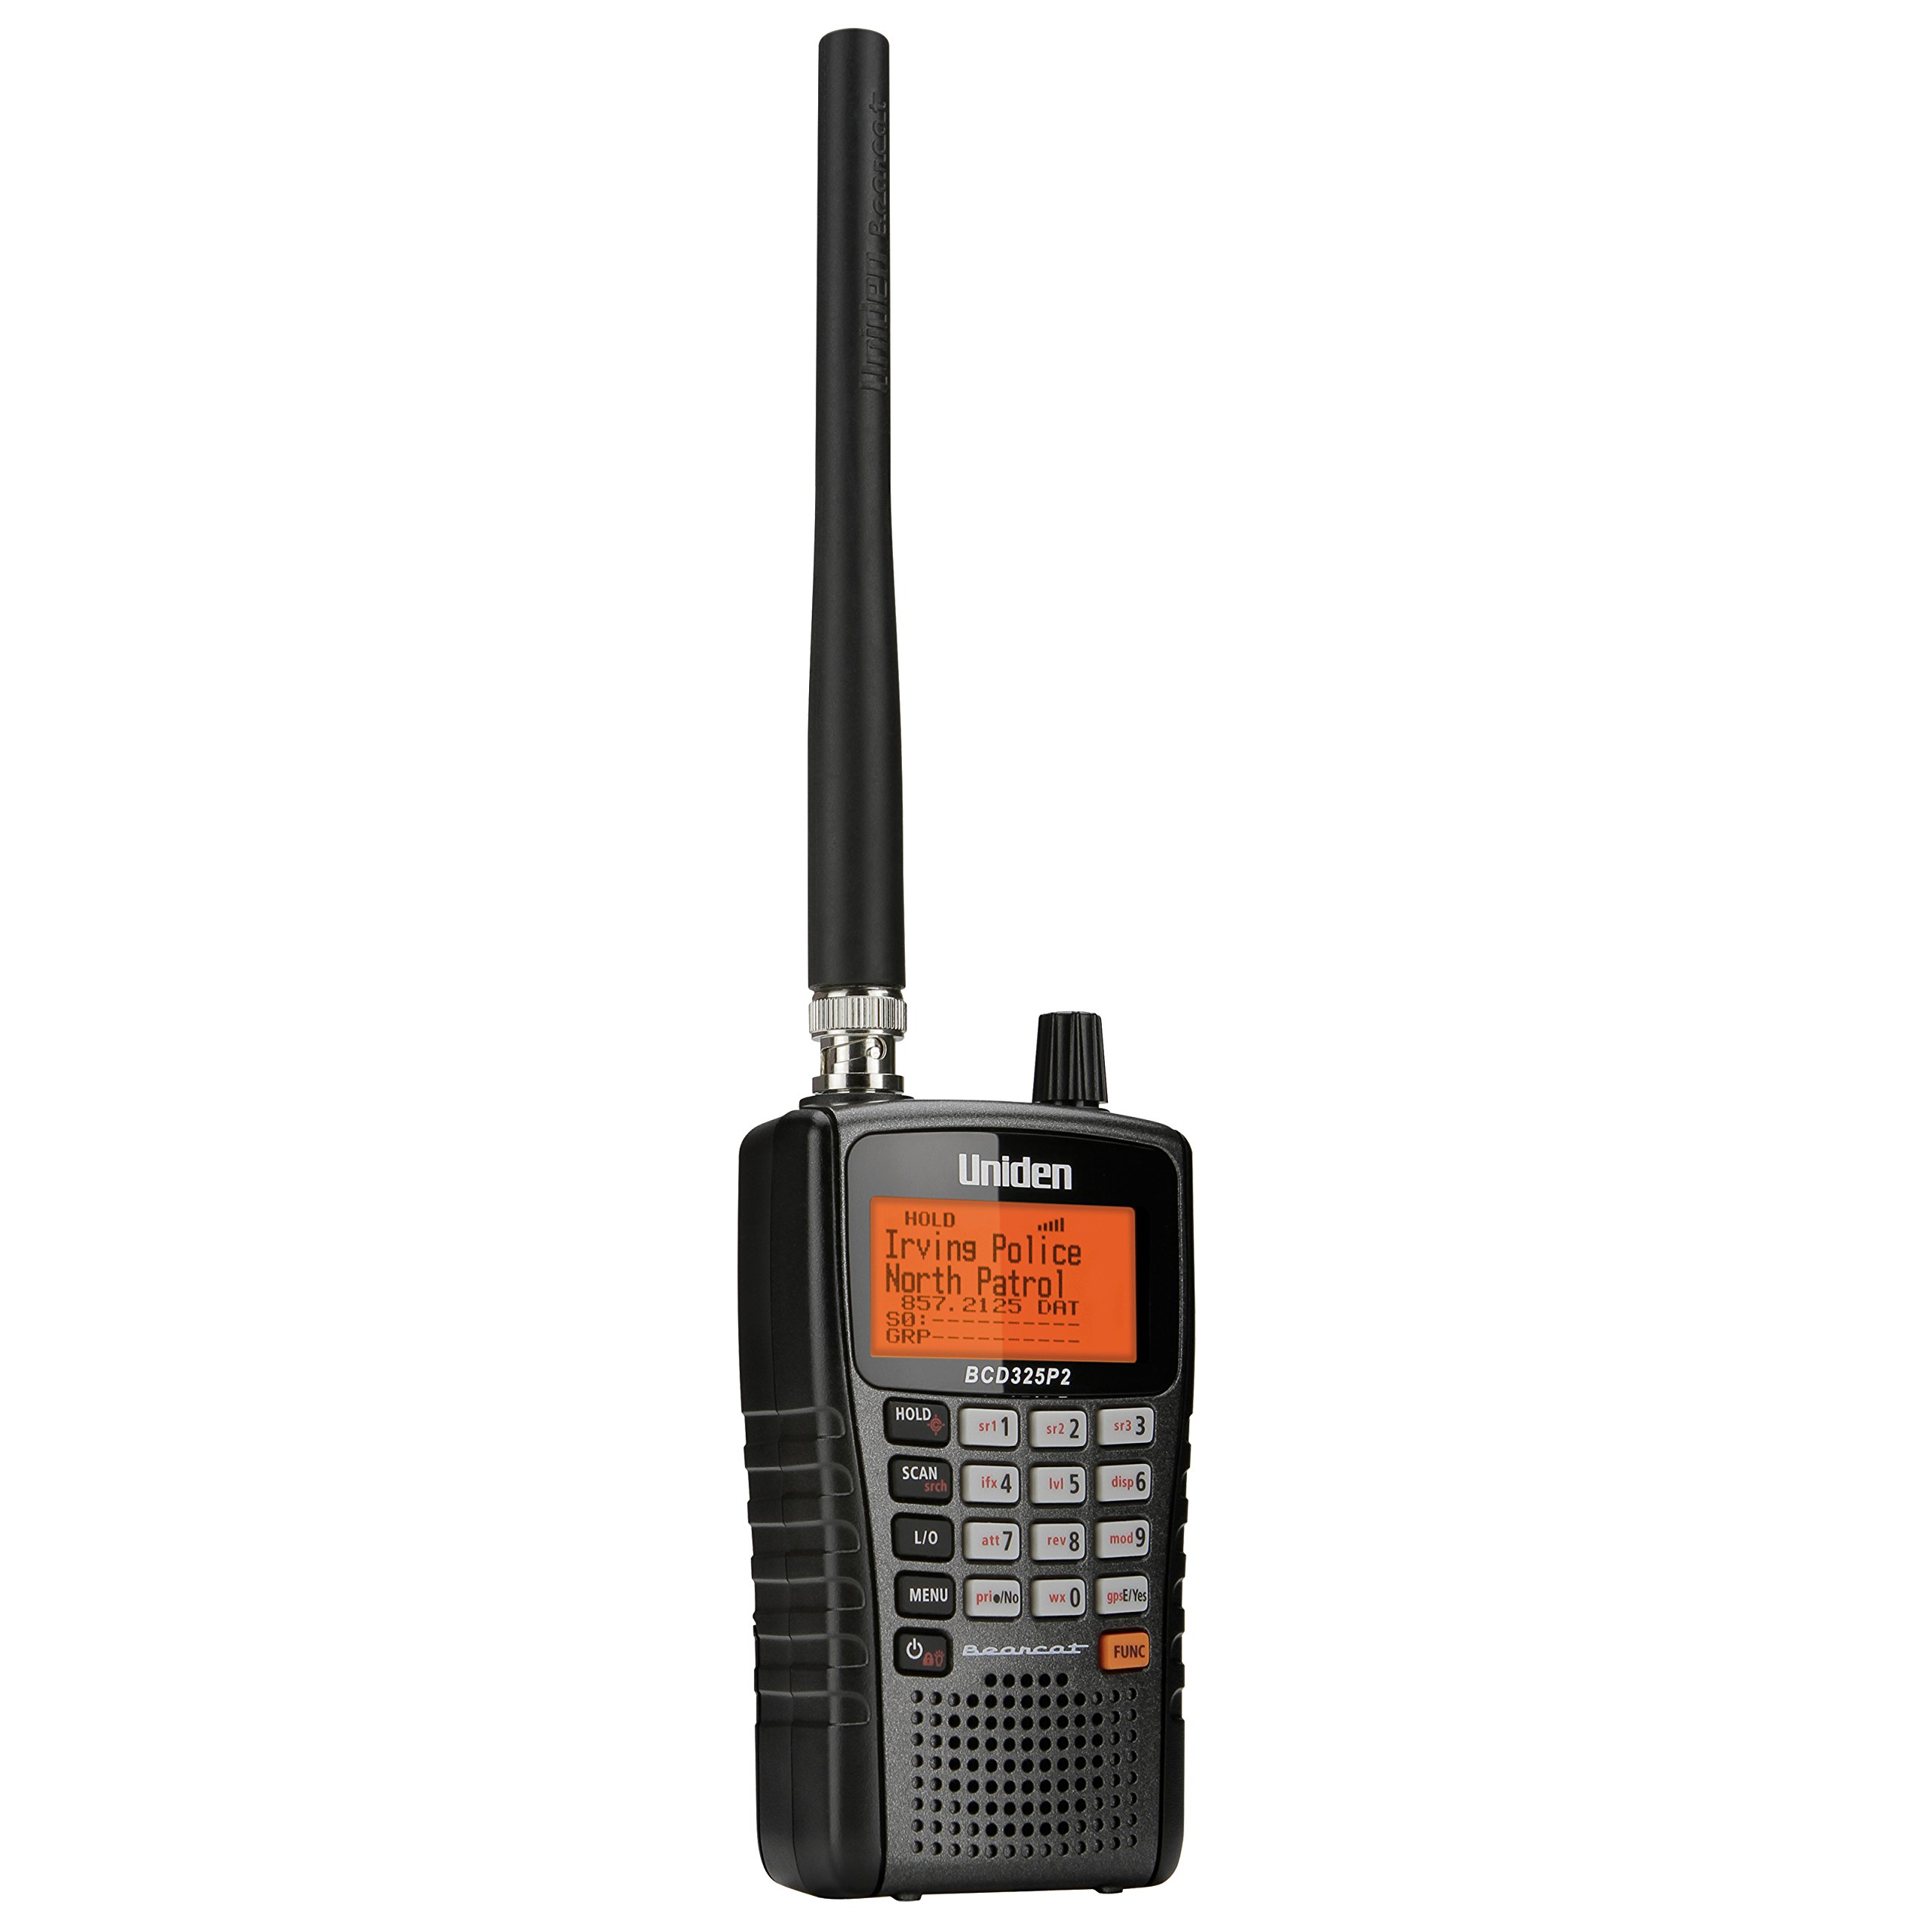 Uniden BCD325P2 Handheld TrunkTracker V Scanner. 25,000 Dynamically Allocated Channels. Close Call RF Capture Technology. Location-Based Scanning and S.A.M.E. Weather Alert. Compact Size. by Uniden (Image #3)